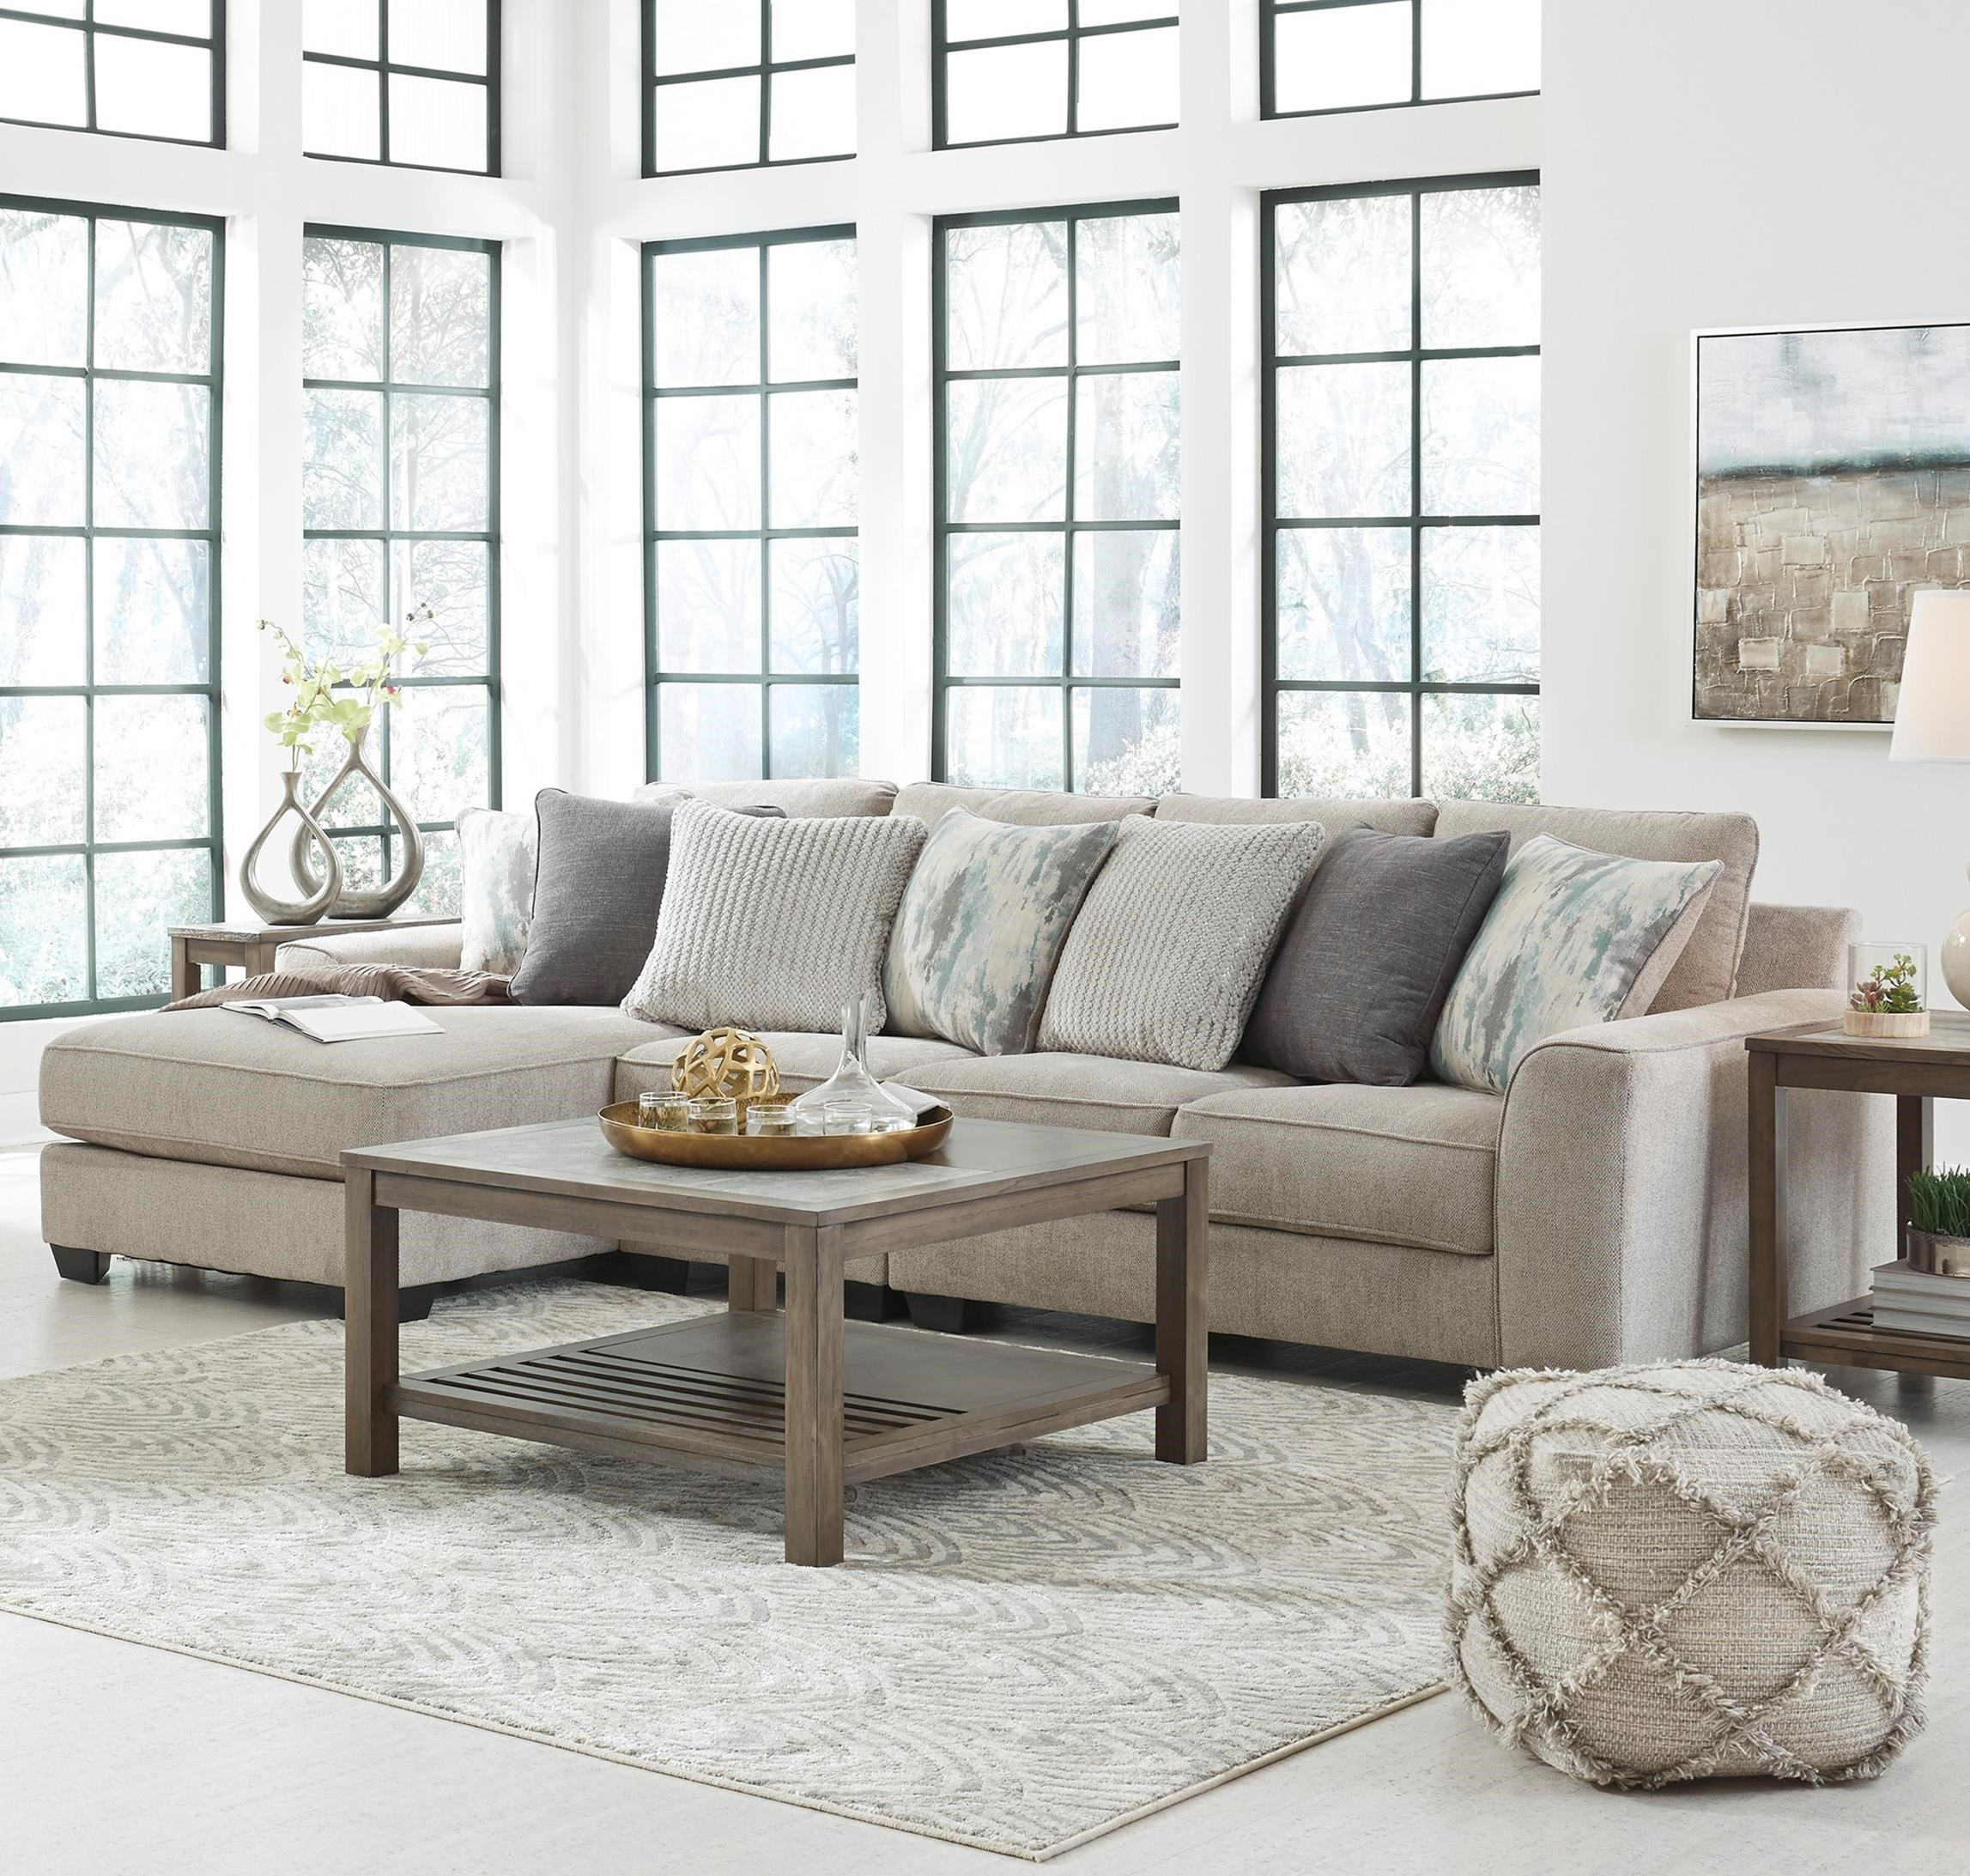 Ardsley 3-Piece Sectional with Left Chaise by Benchcraft at Fisher Home Furnishings